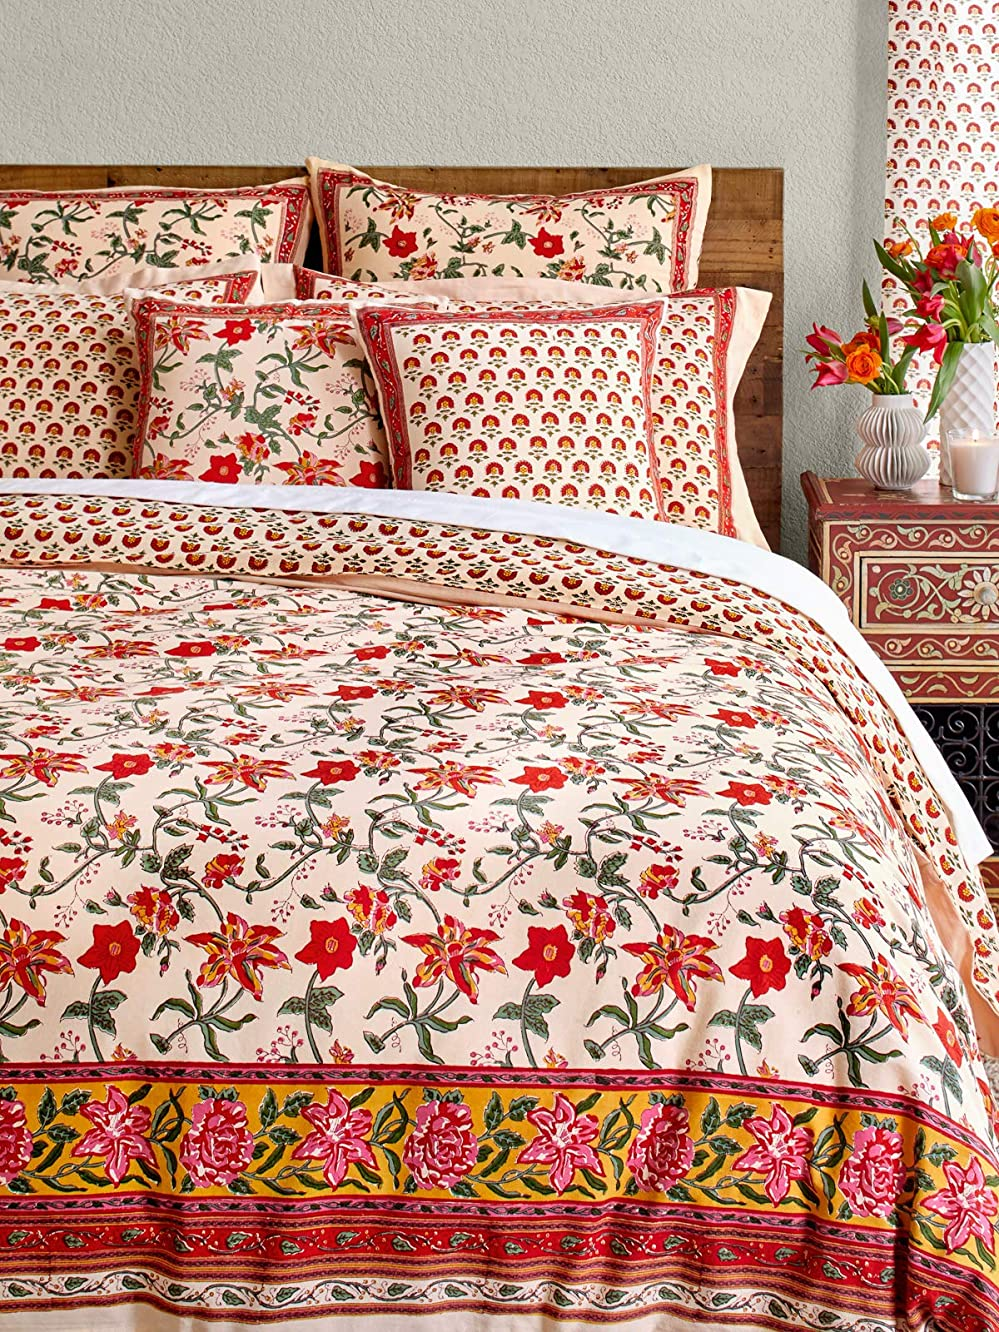 Saffron Marigold Tropical Garden Duvet Cover | Red Hibiscus Exotic Colorful Pink Floral Botanical Coverlet | Vintage Rustic Country Cottage Farmhouse Quilt Comforter Cover Queen